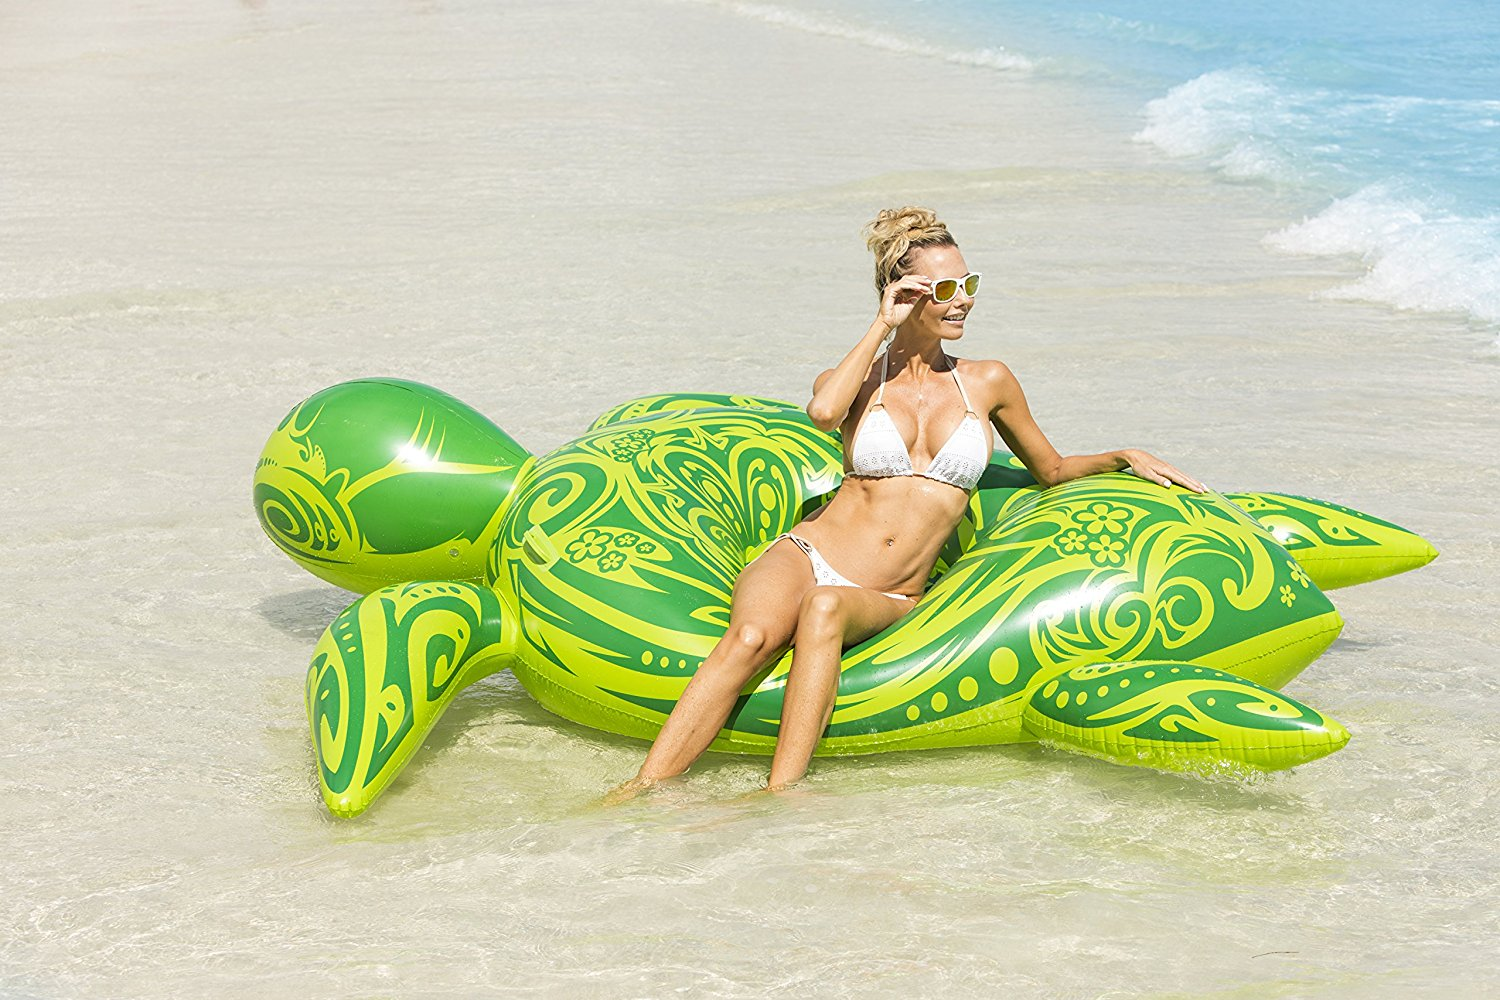 Sea Turtle Pool Float - The most Instagram worthy Pool Floats Summer 2017